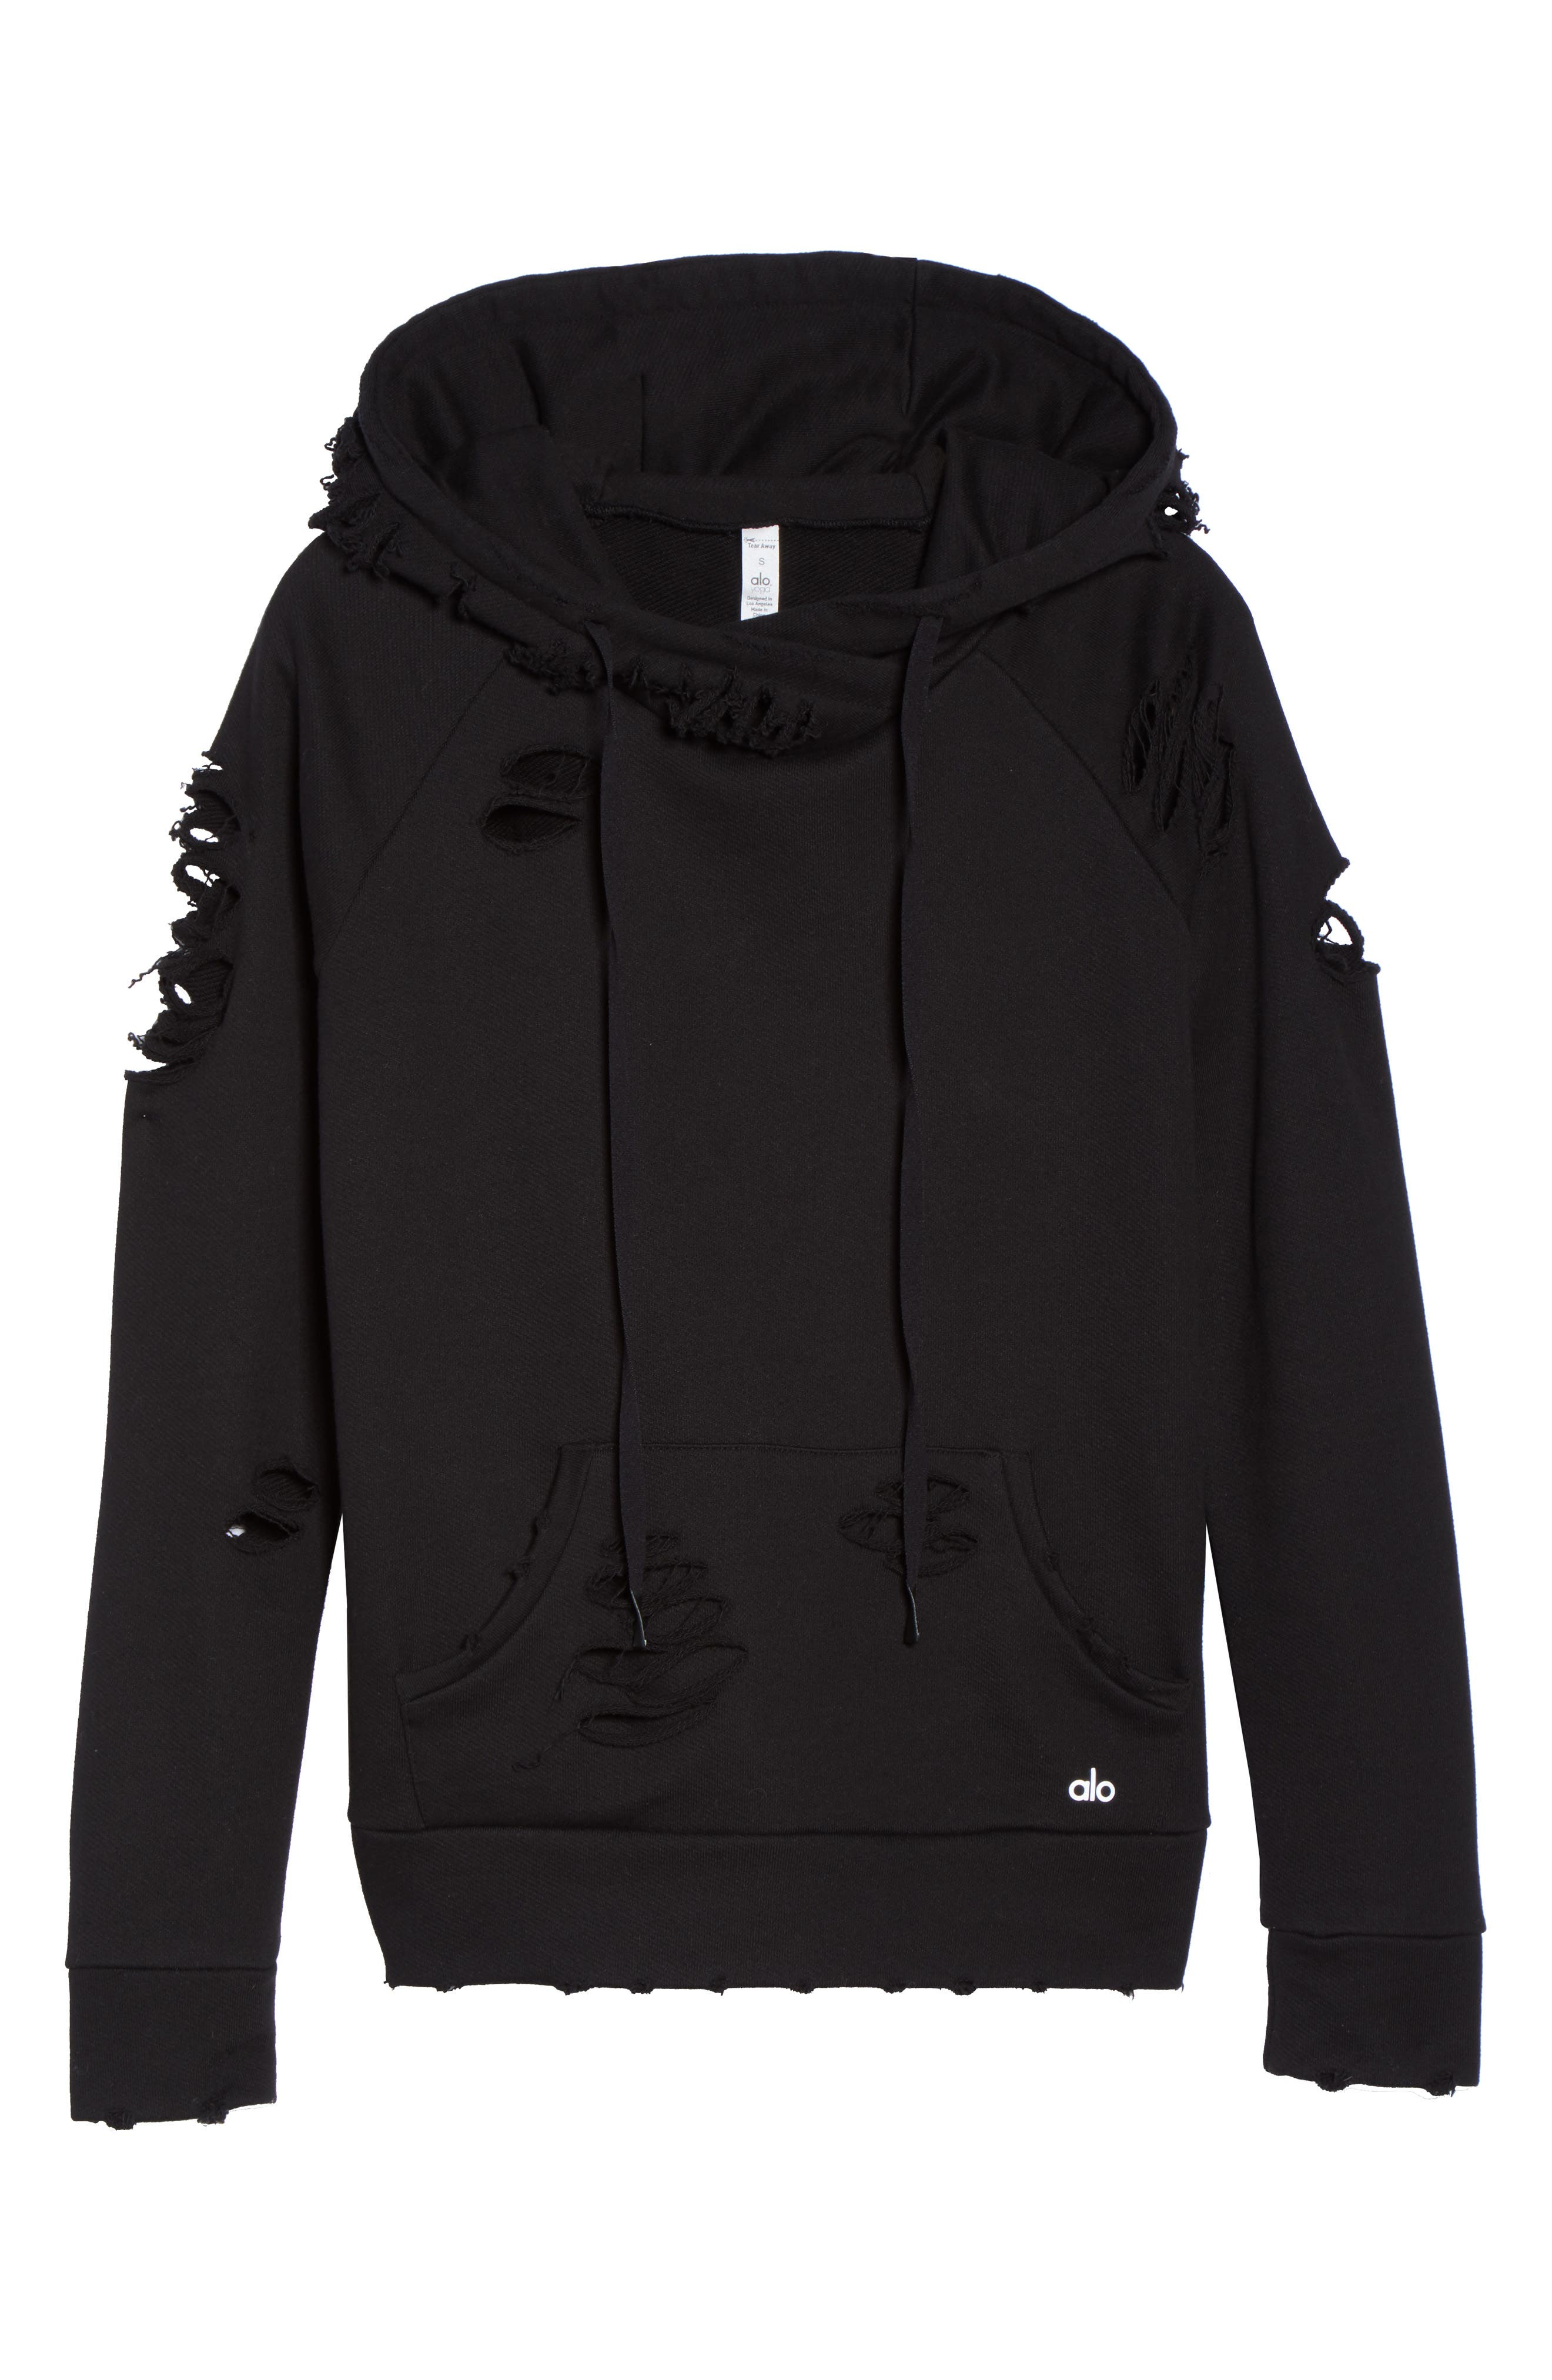 Ripped Hoodie,                             Alternate thumbnail 7, color,                             BLACK/ DISTRESSED HOLES